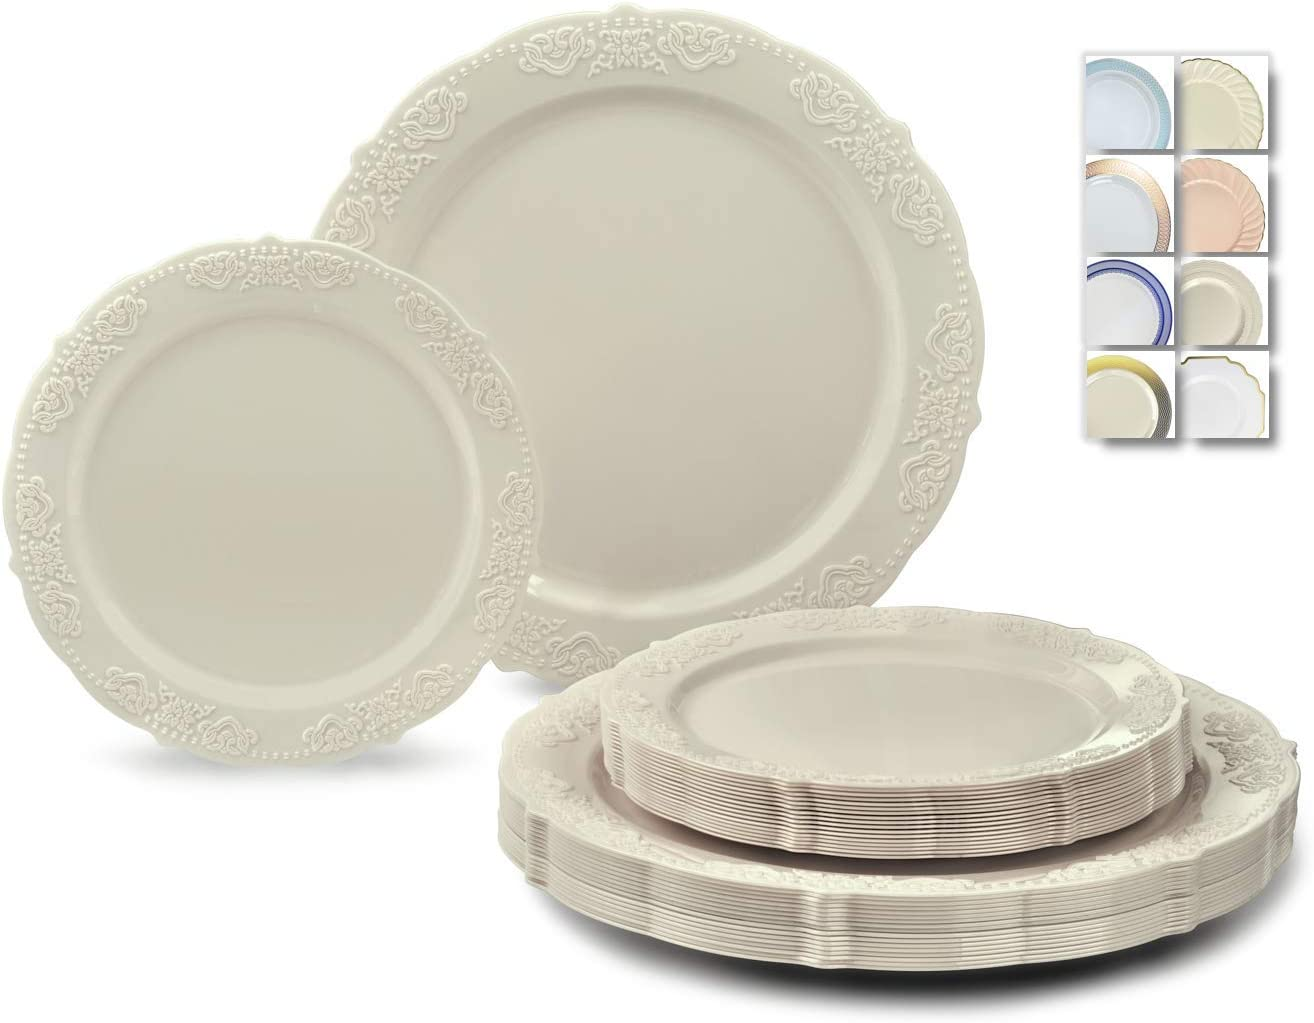 OCCASIONS 240 Plates Pack,(120 Guests) Vintage Wedding Party Disposable Plastic Plates Set -120 x 10.25'' Dinner + 120 x 7.5'' Salad/Dessert Plate (Portofino Ivory)